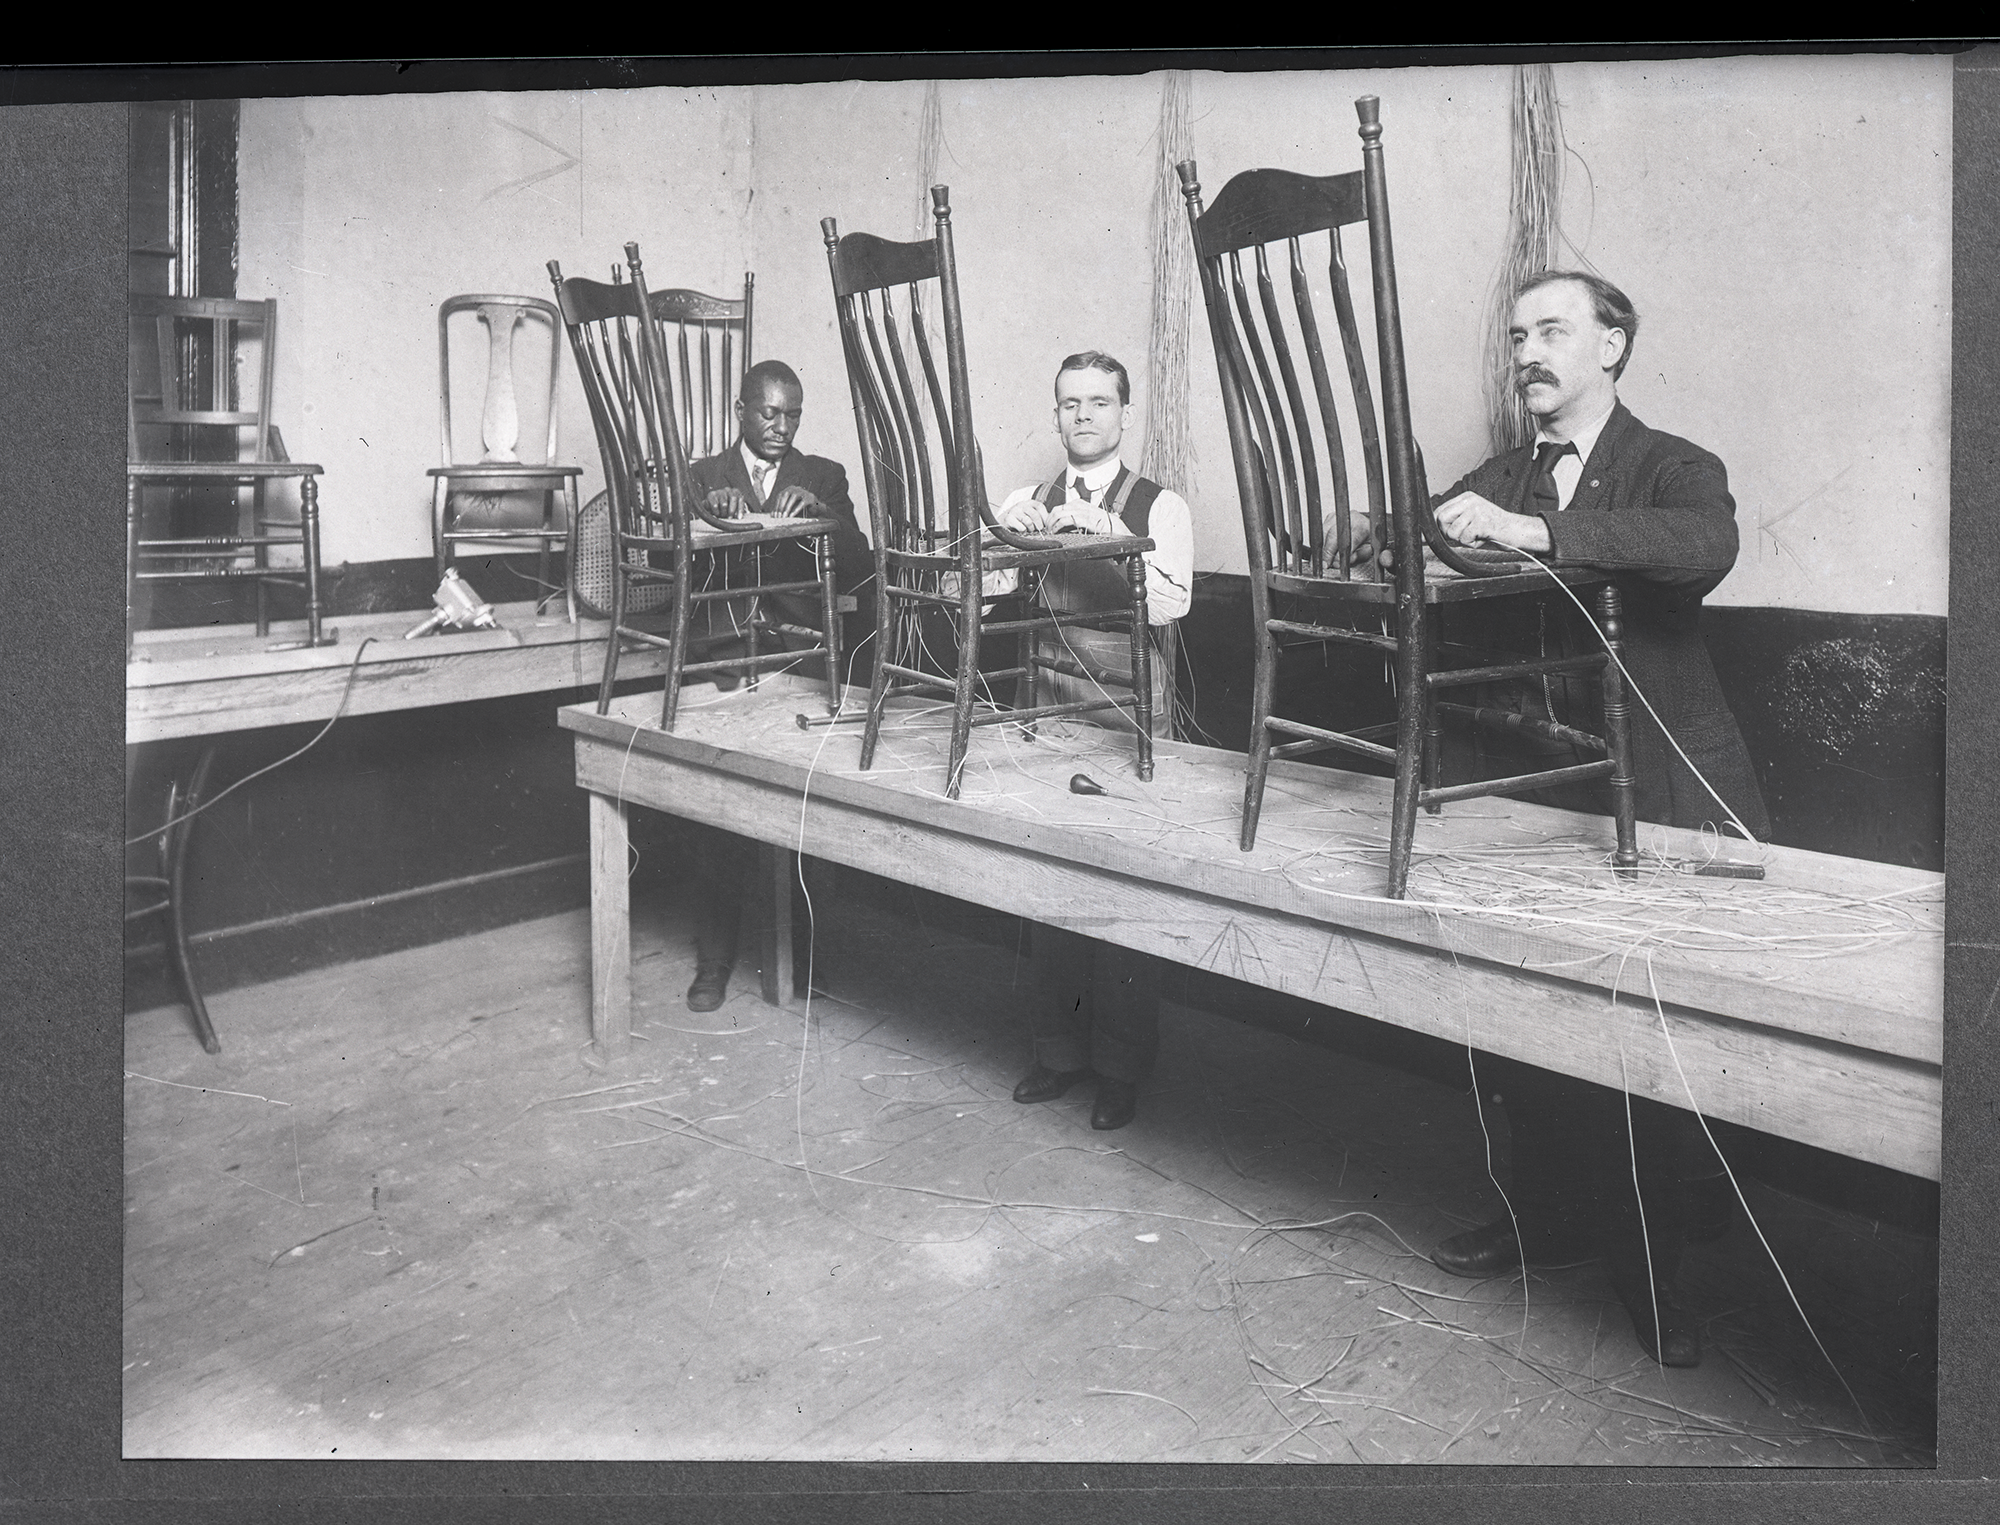 Historic photo shows three blind men weaving chair seats.